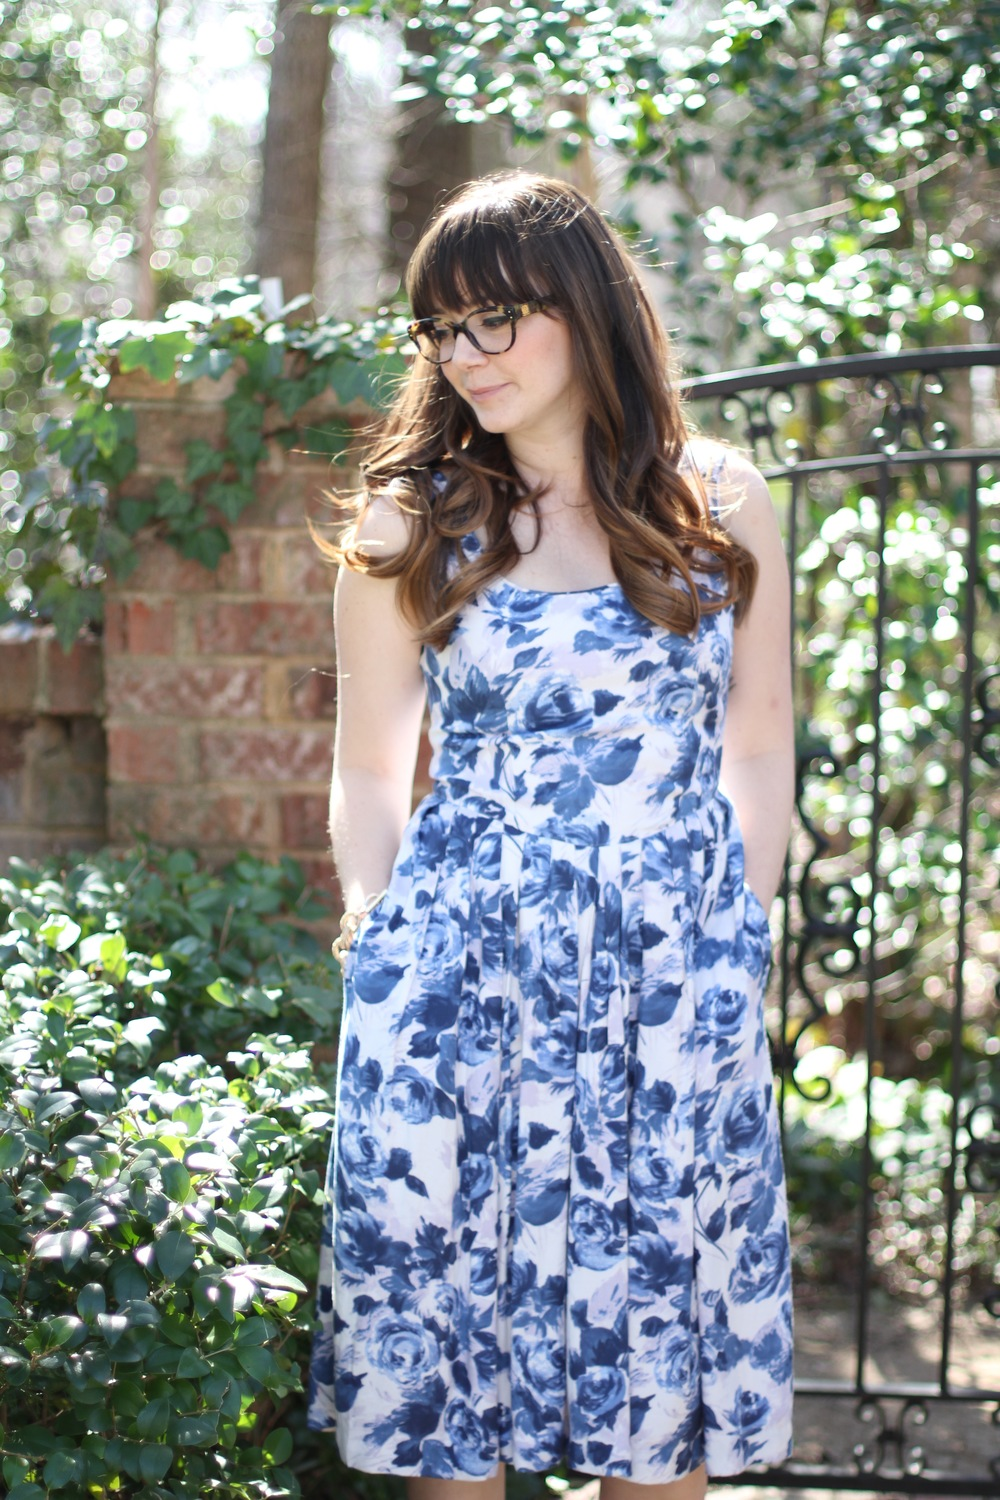 Garden Party Dress | Freckled Italian